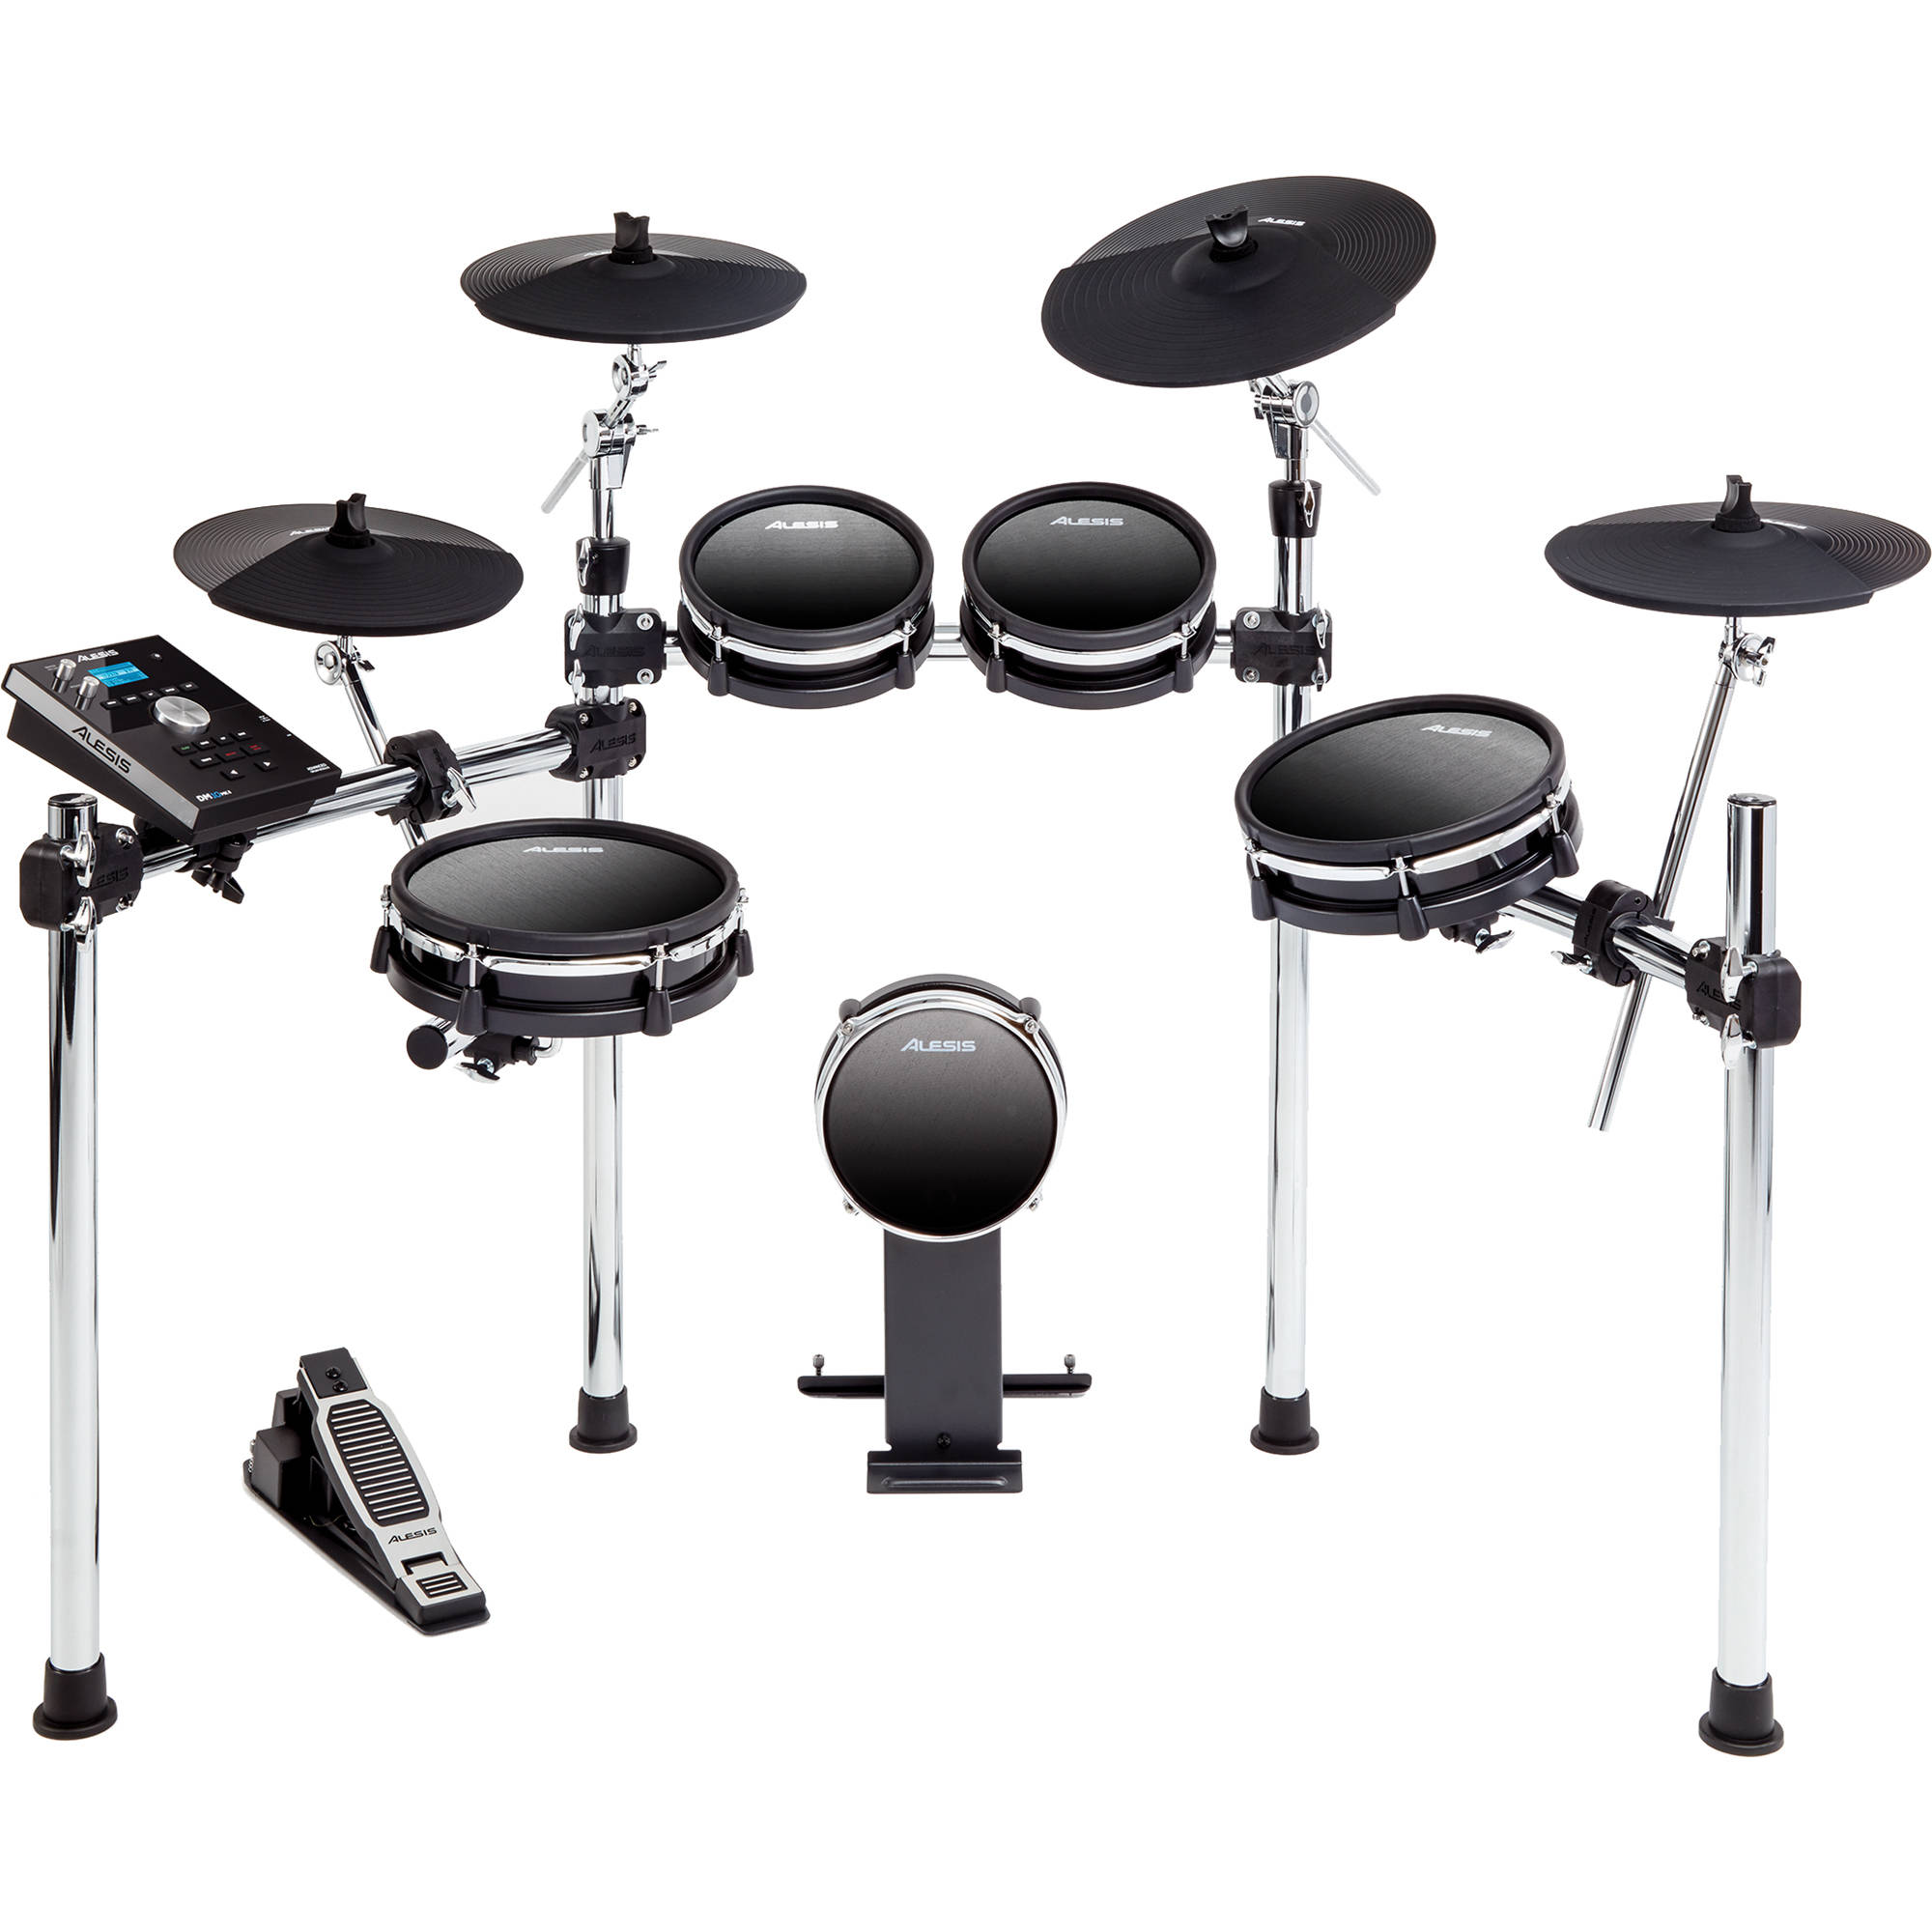 alesis dm10 mkii studio kit nine piece dm10 mkii studio kit b h. Black Bedroom Furniture Sets. Home Design Ideas